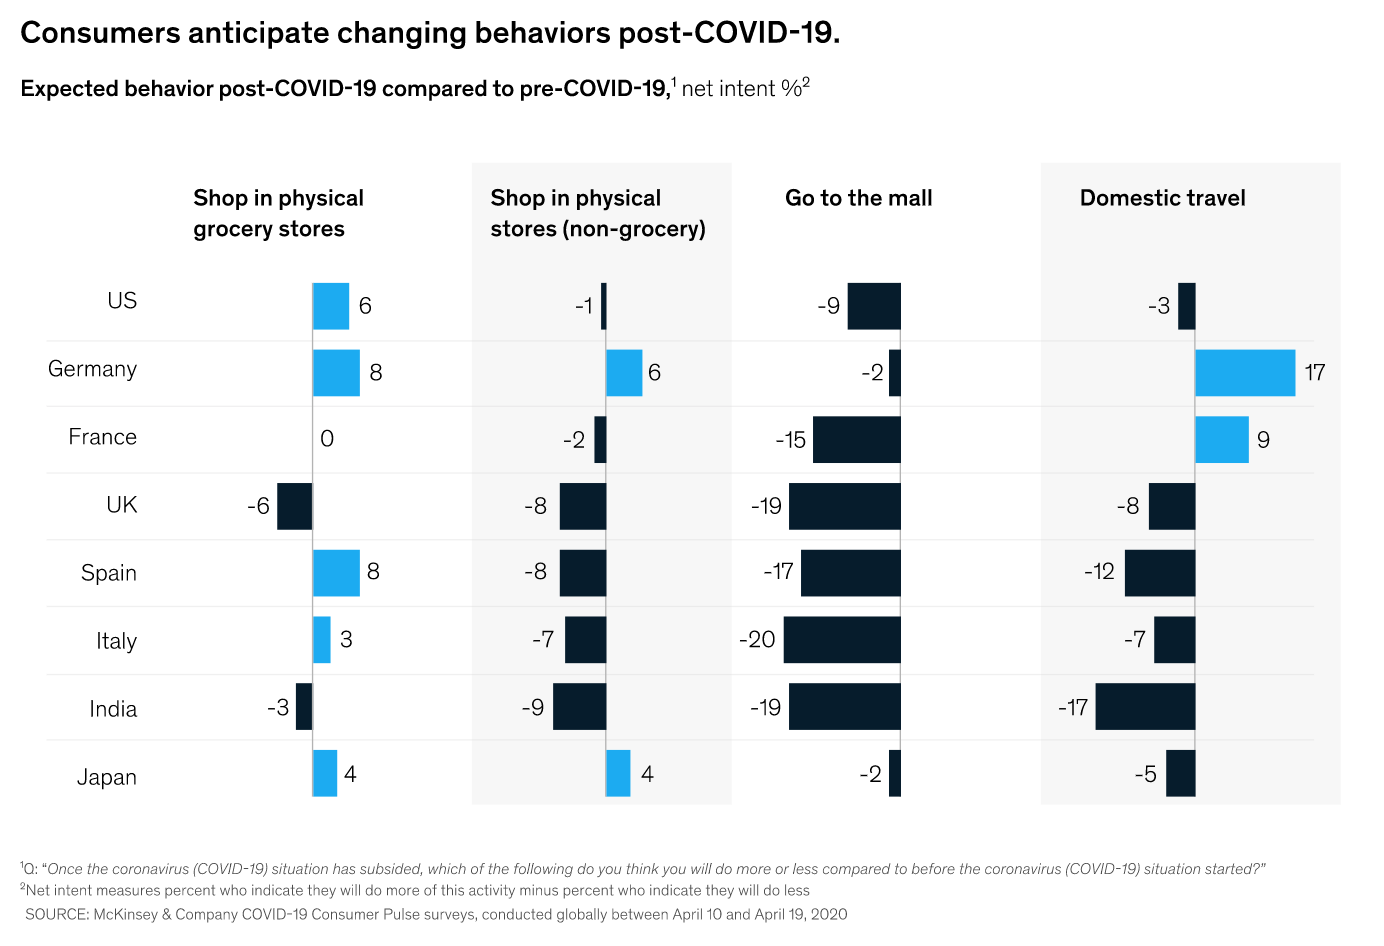 consumer anticipate changing behaviors post covid-19 data